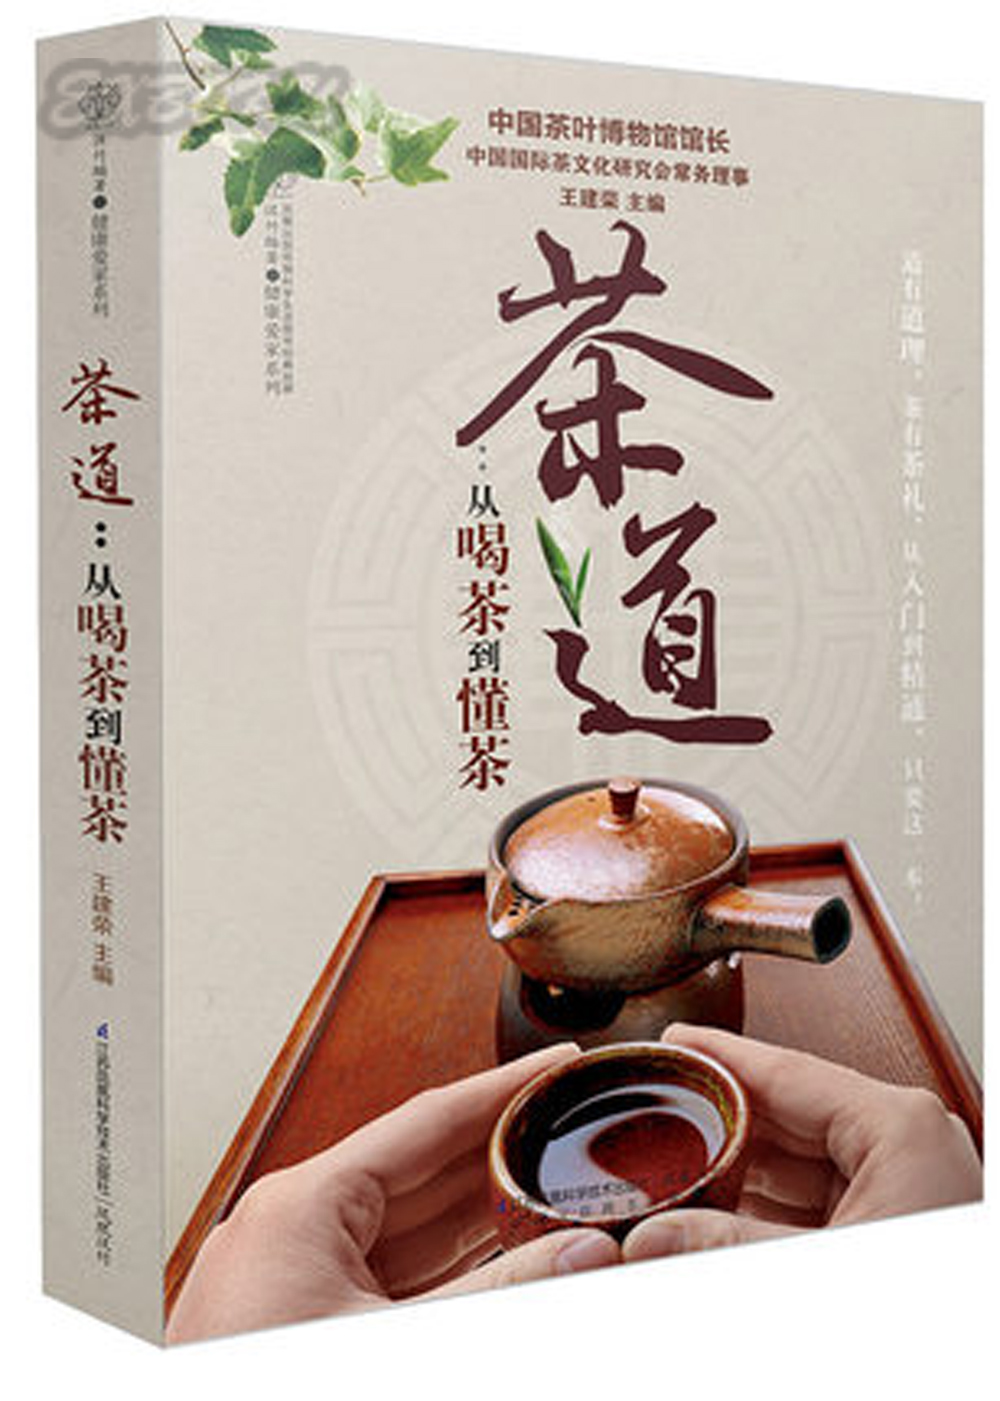 Tea ceremony- tea from drinking tea to understand (more than 600 Figure experts teach you to read the tea) green/red tea 100g chinese wulong da hong pao tea big red robe oolong black cha green food da hong pao health care wuyi dahongpao tea loose te page 8